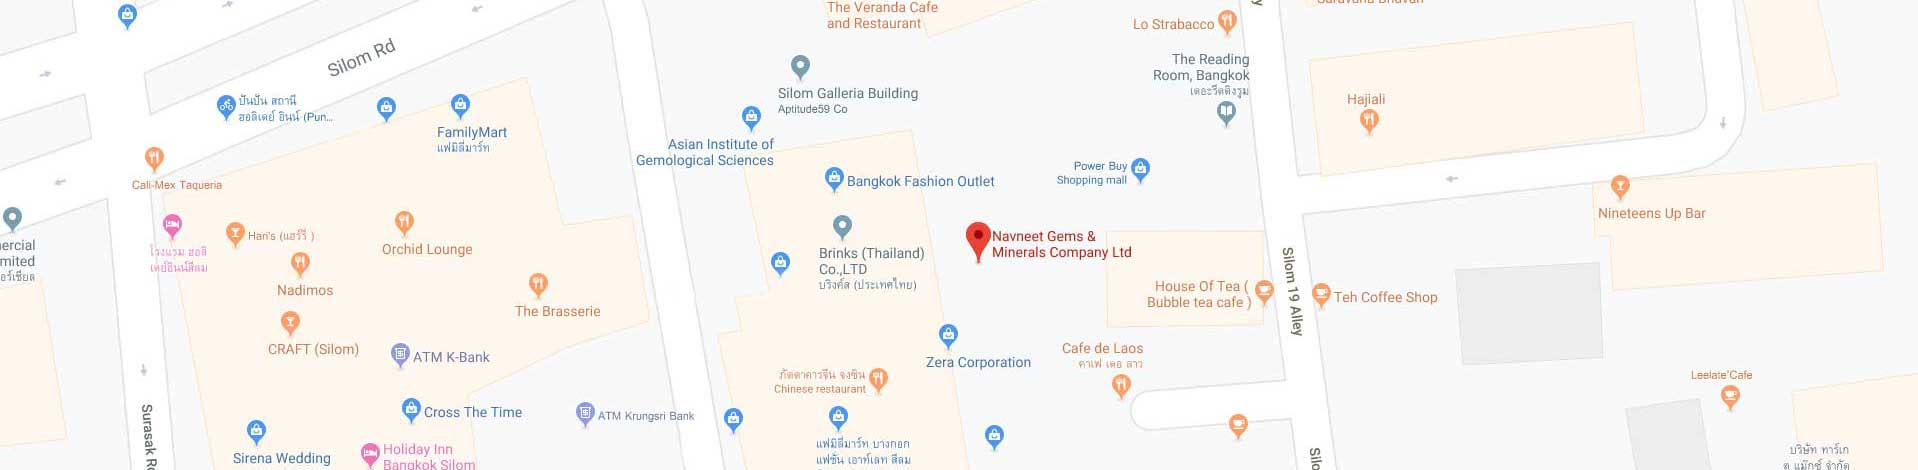 Navneet Gems Google Map